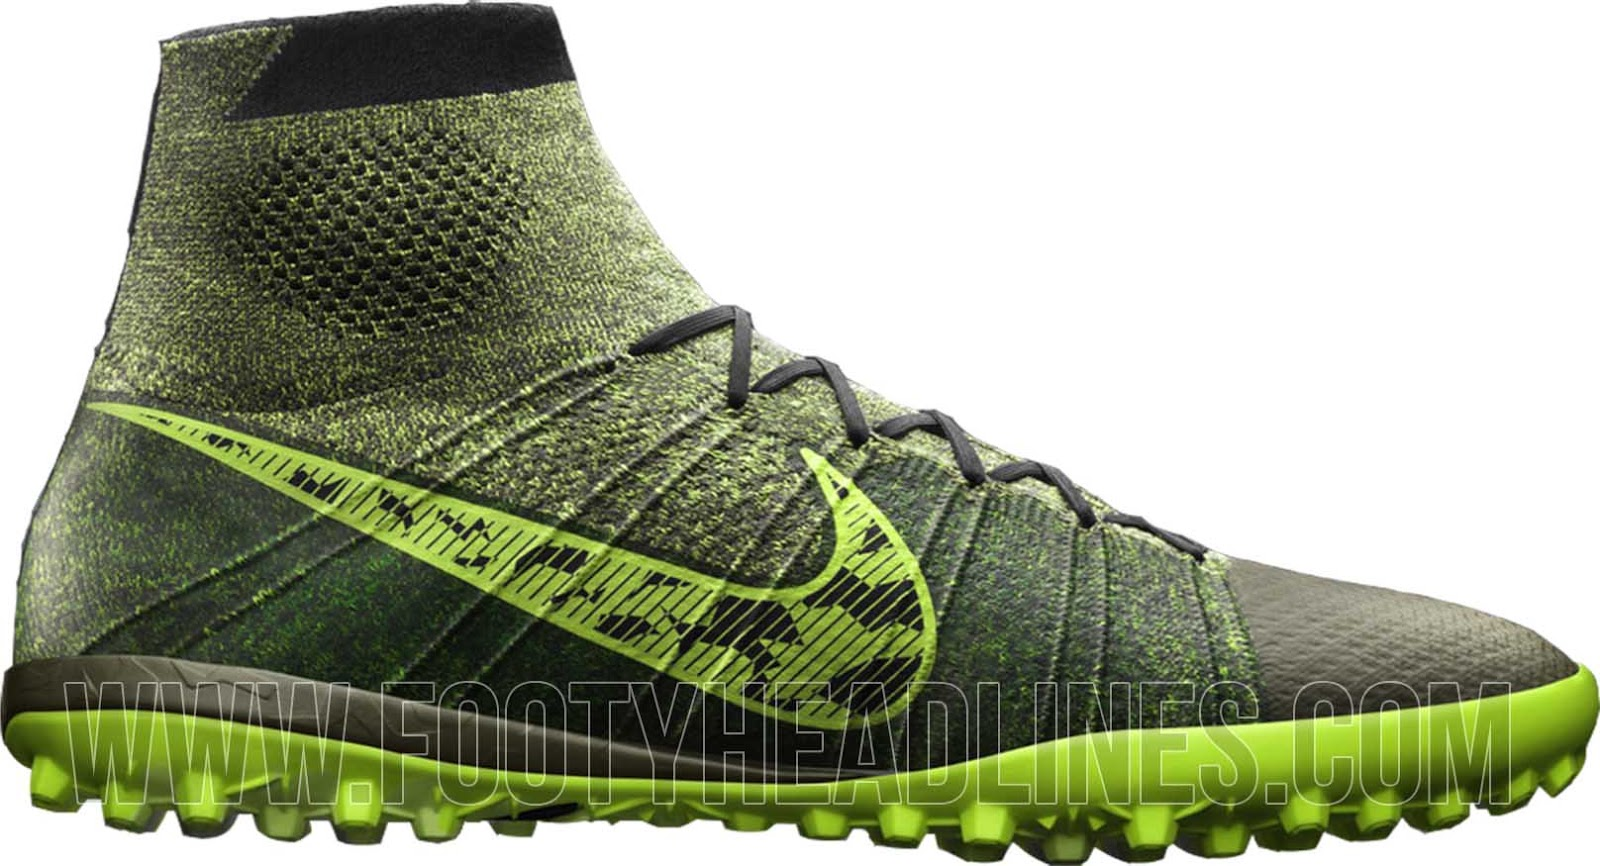 grey volt nike elastico superfly 14 15 boot unveiled. Black Bedroom Furniture Sets. Home Design Ideas